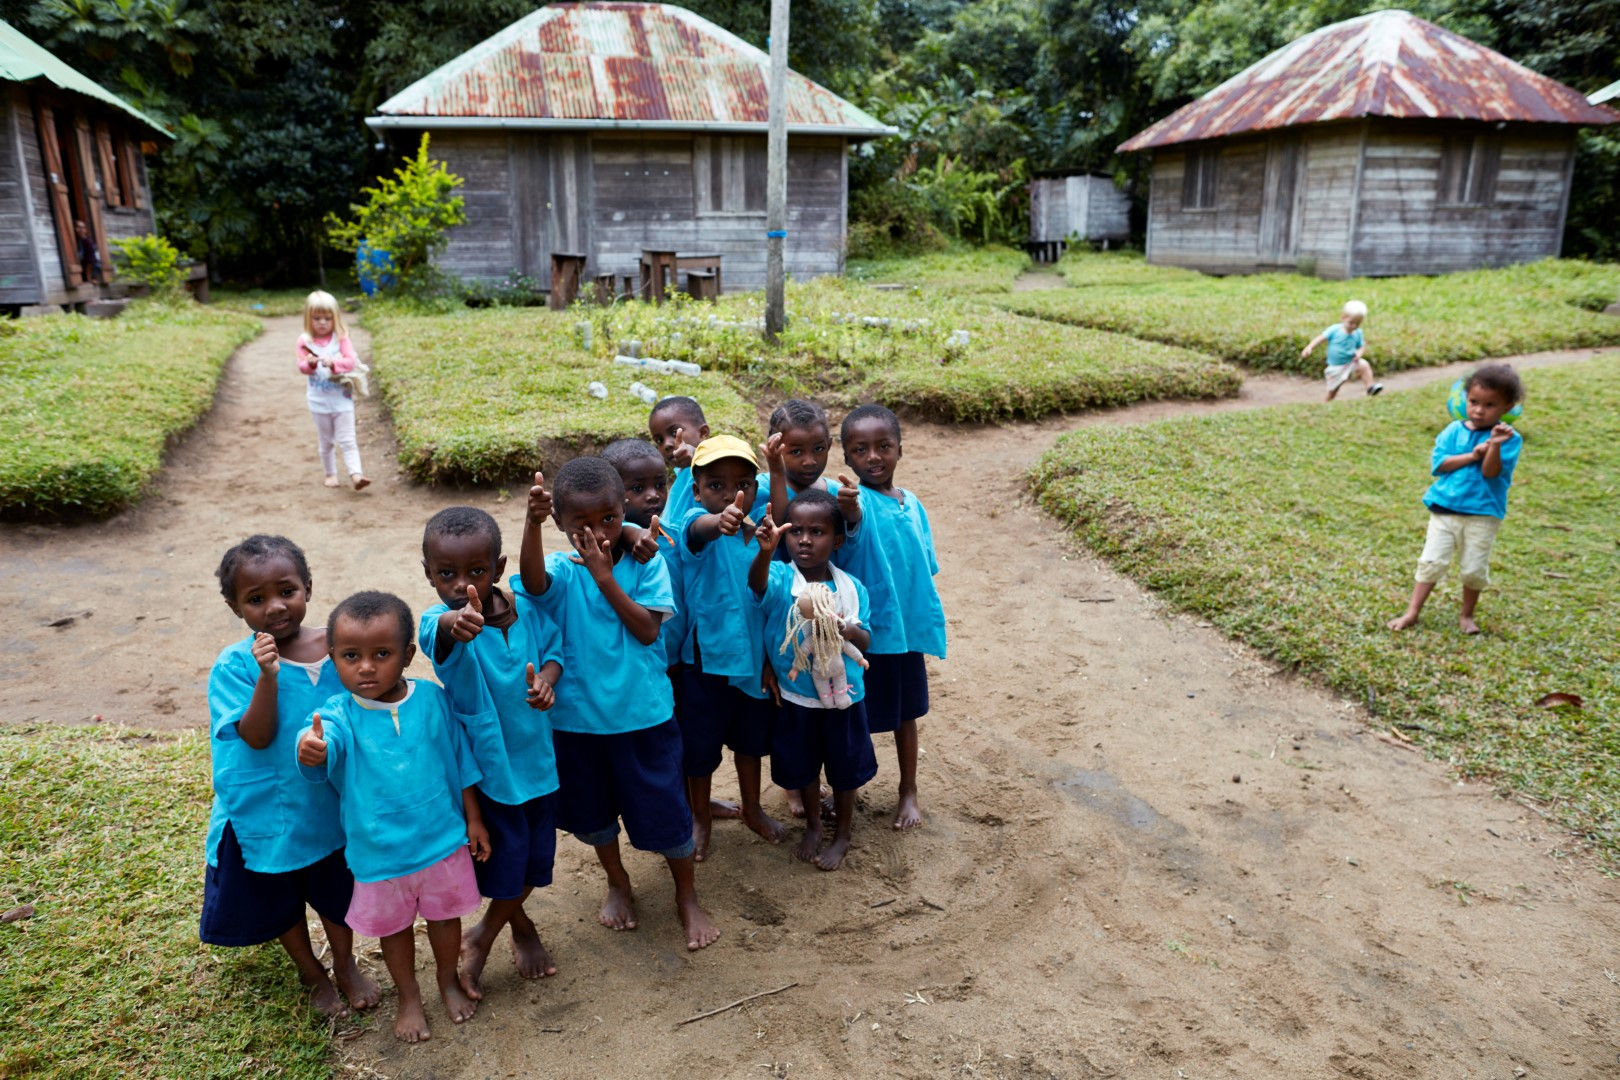 Play School in a village in Masoala National Parc, Madagascar, September and October 2017